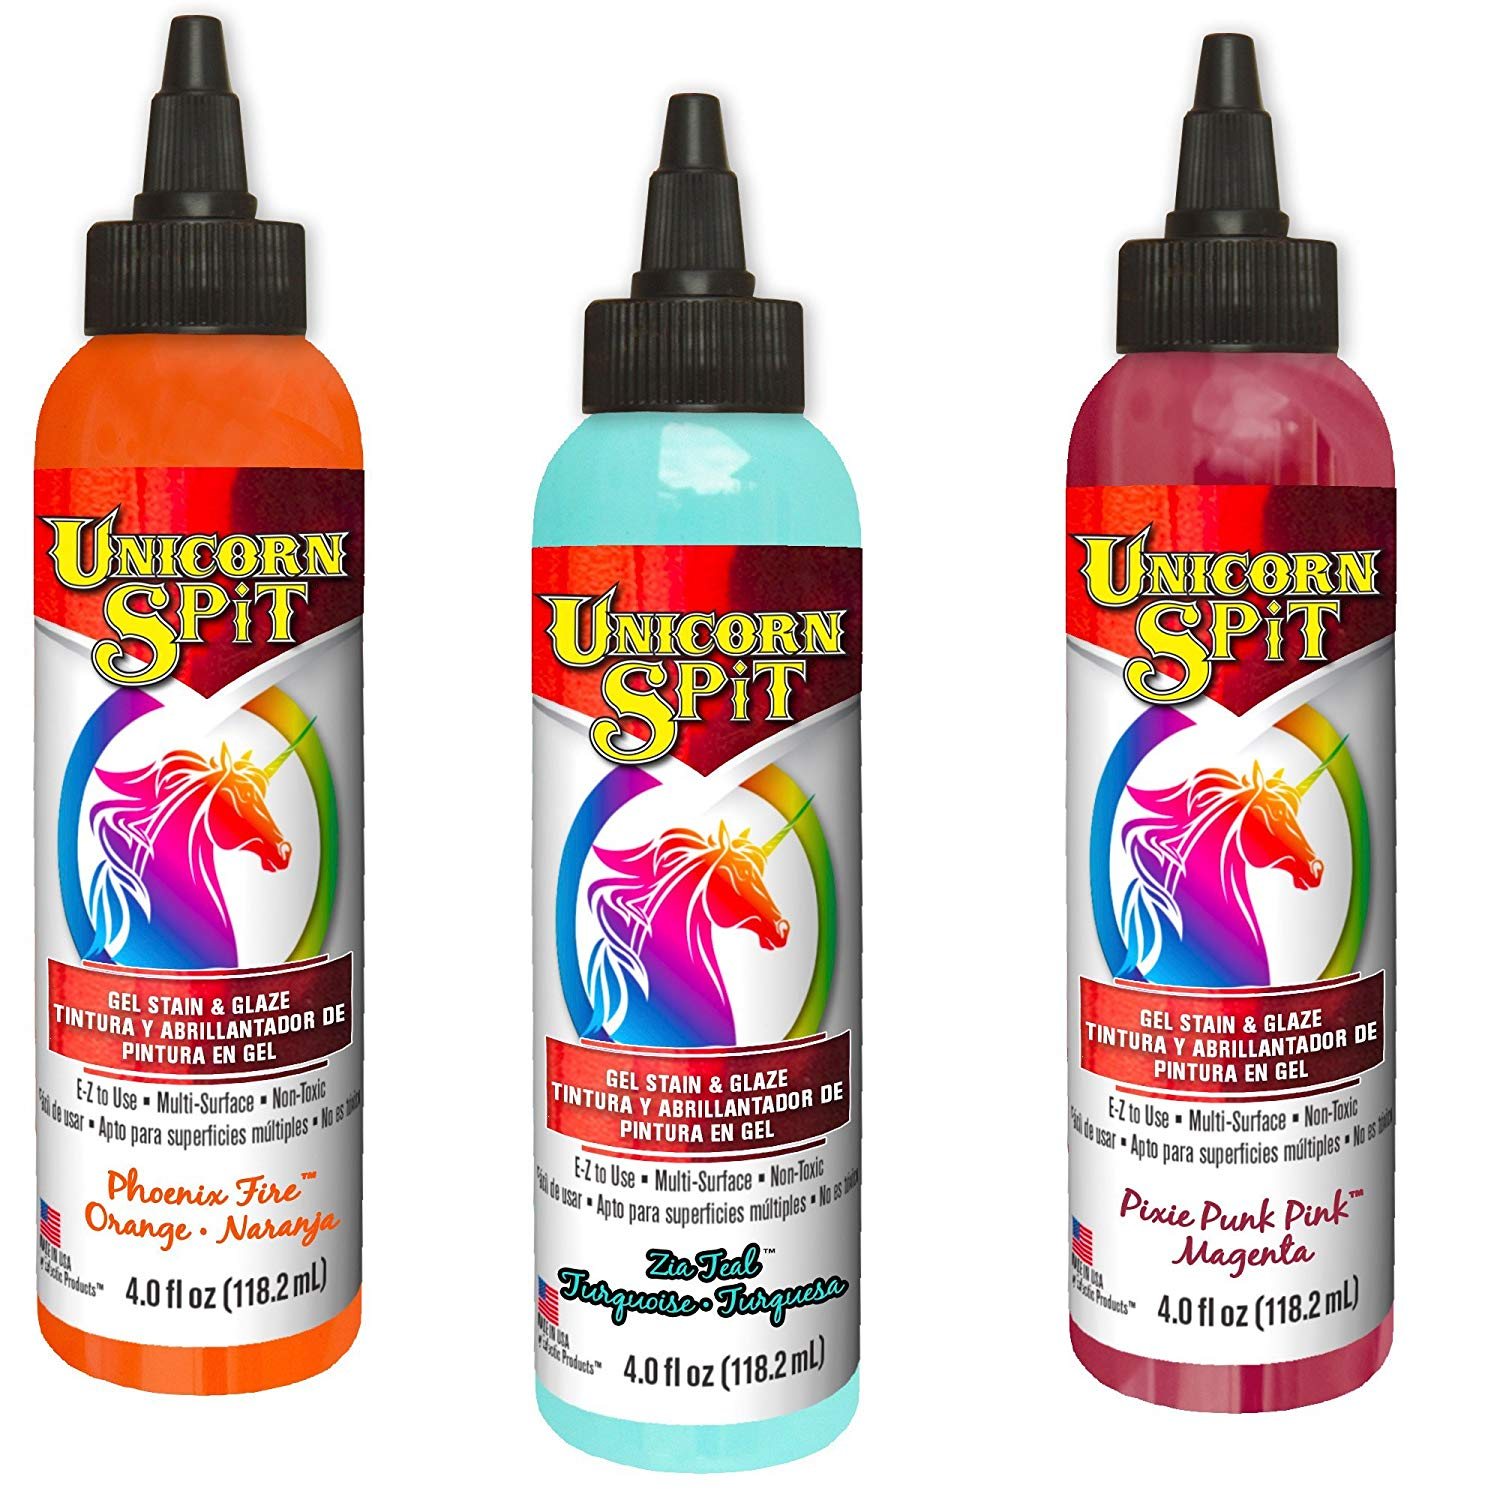 unicorn spit collection